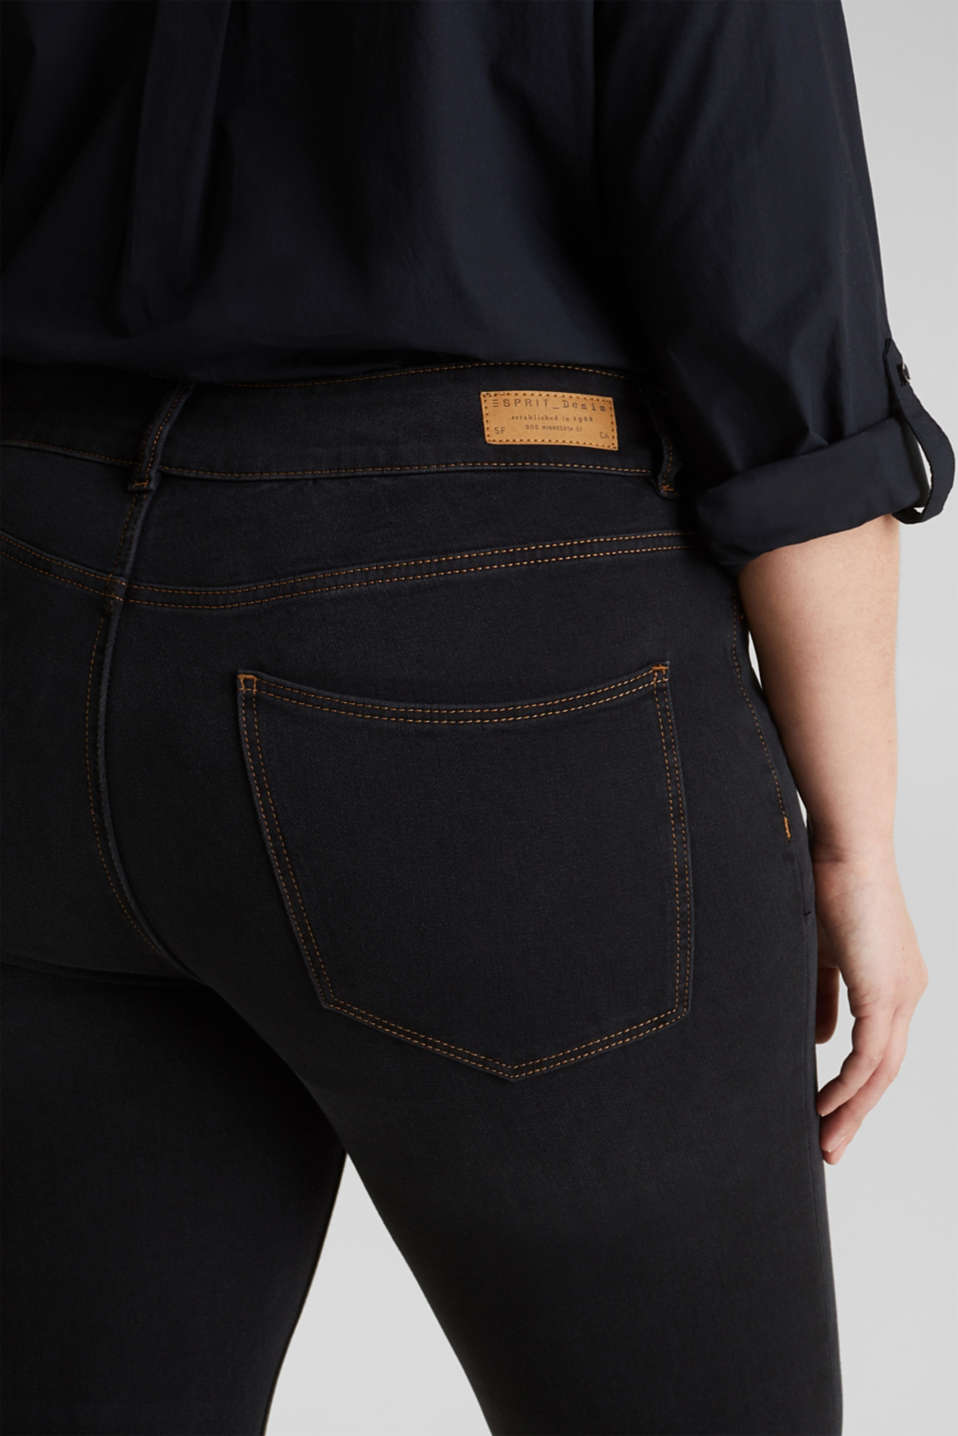 CURVY two-way stretch jeans, BLACK DARK WASH, detail image number 5